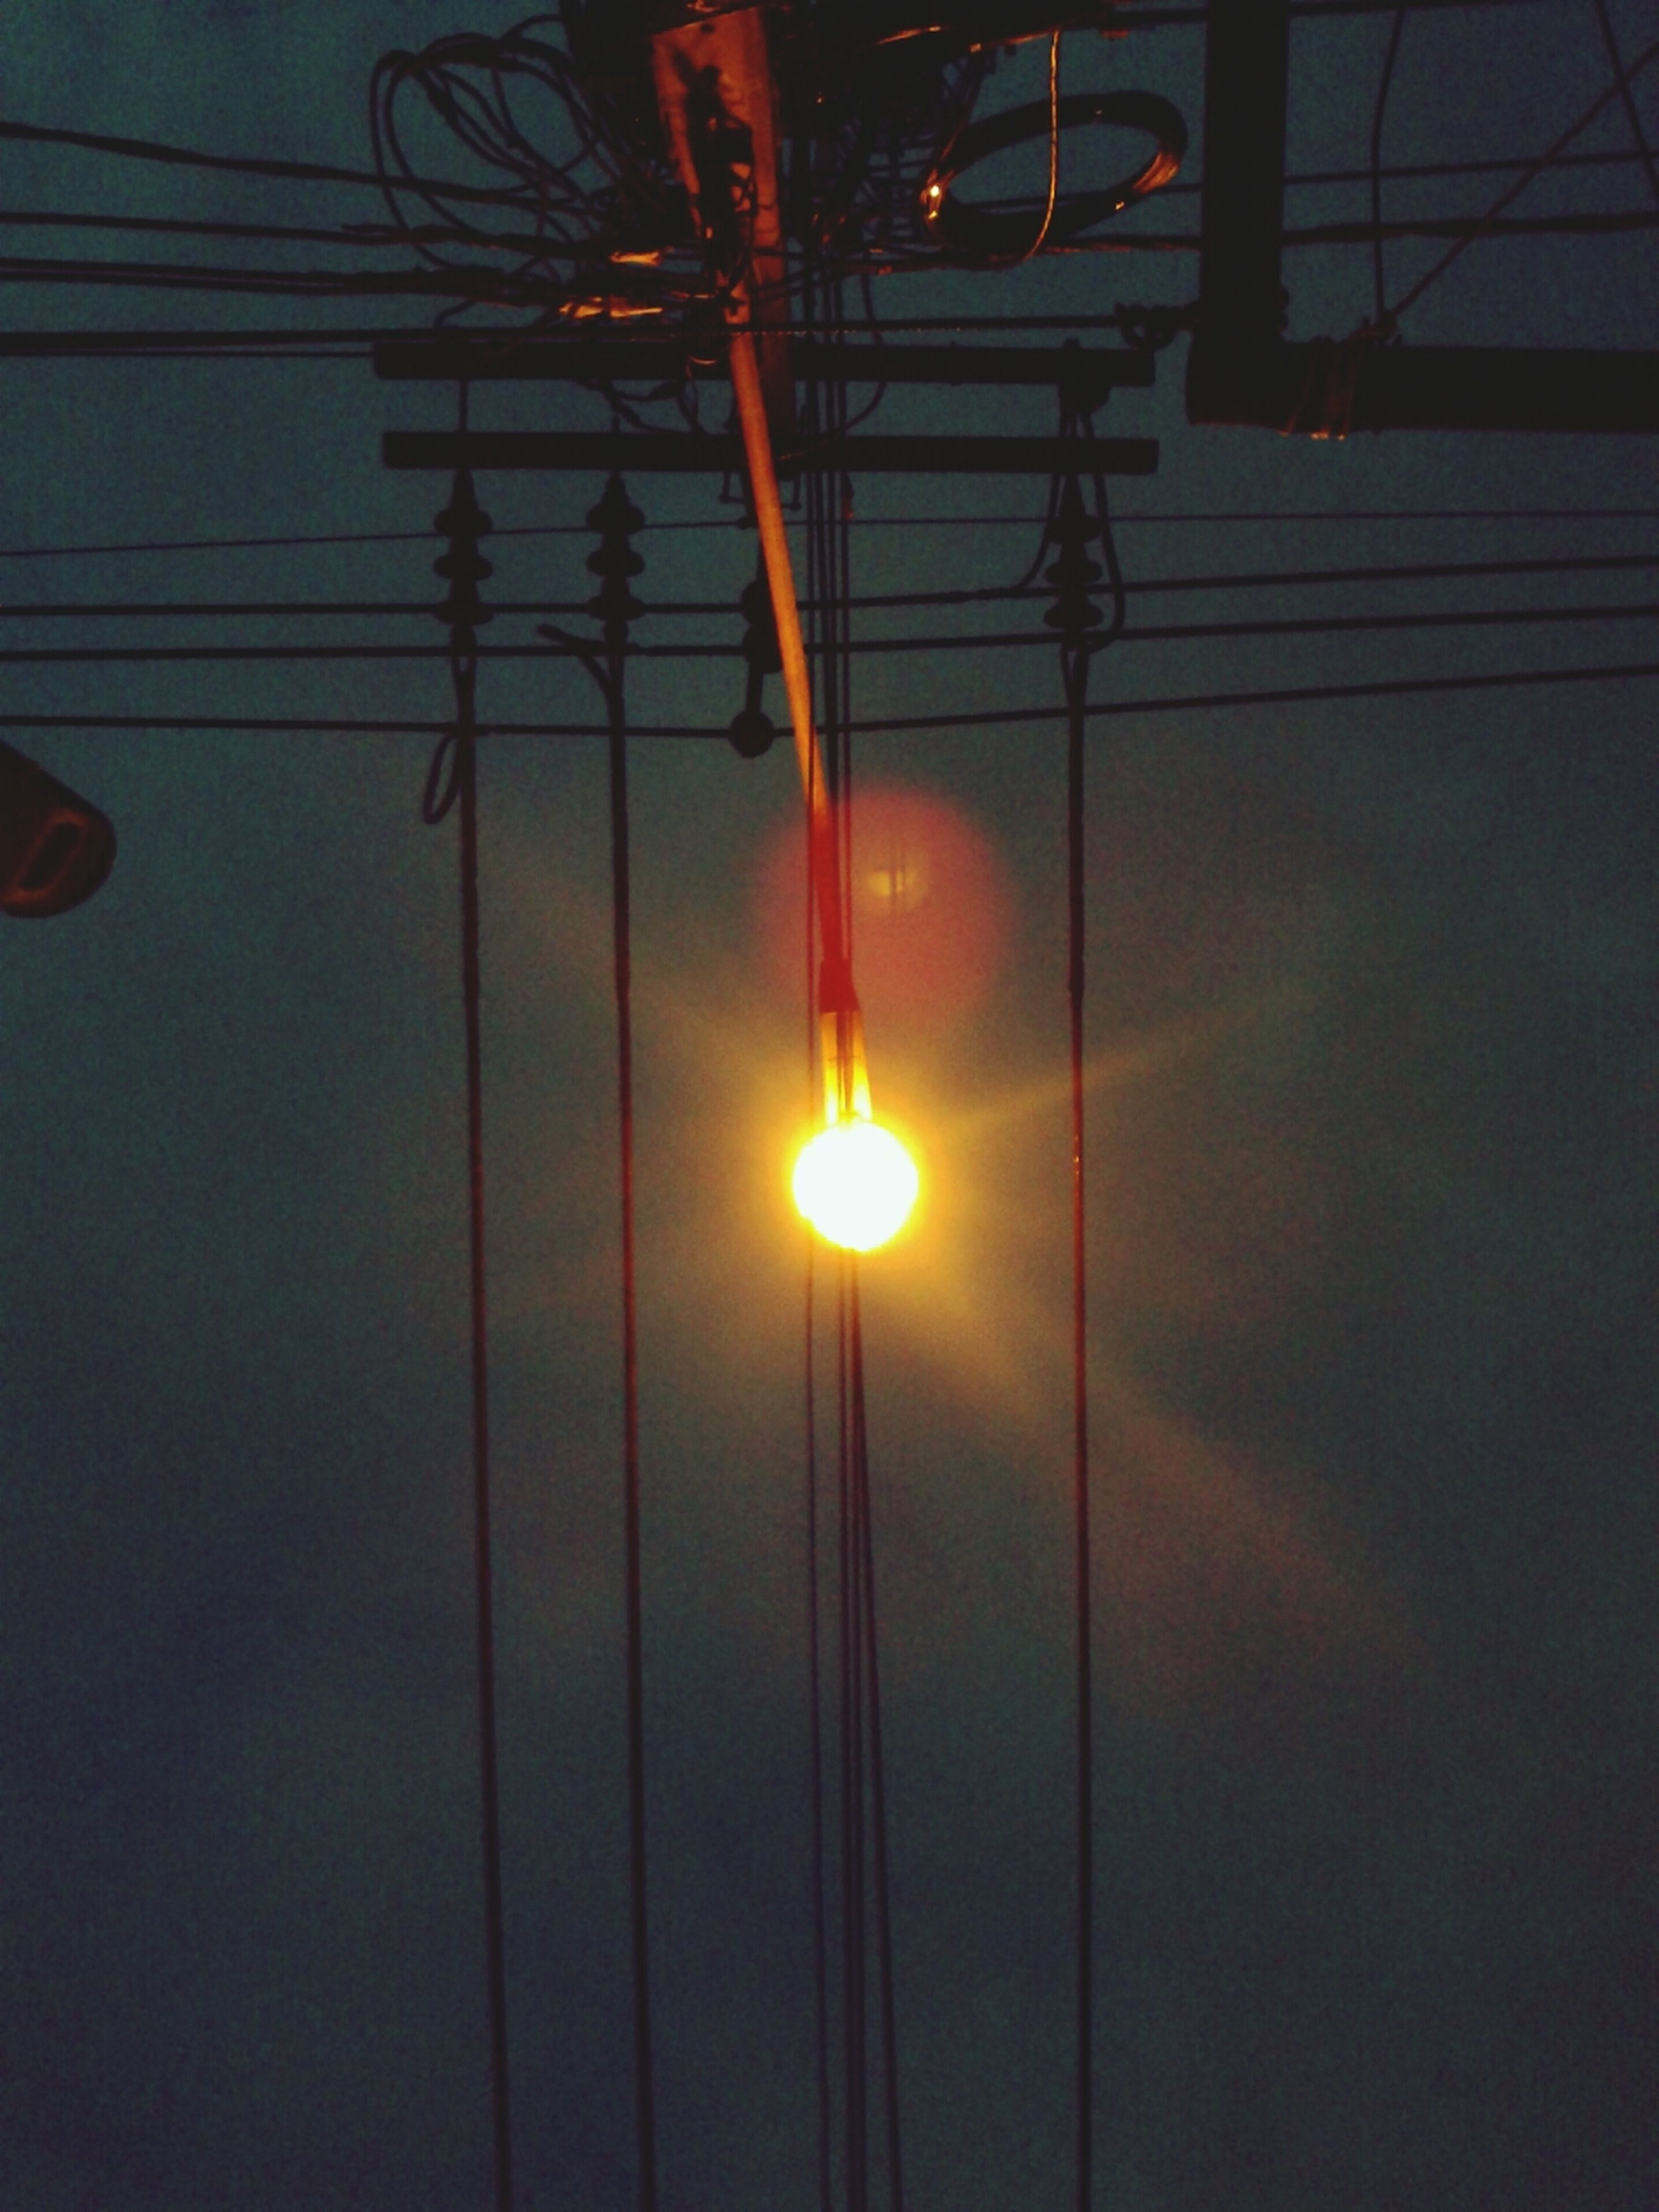 electricity, lighting equipment, illuminated, power line, low angle view, street light, silhouette, power supply, electricity pylon, cable, sunset, electric light, fuel and power generation, technology, connection, sky, night, light - natural phenomenon, sun, pole